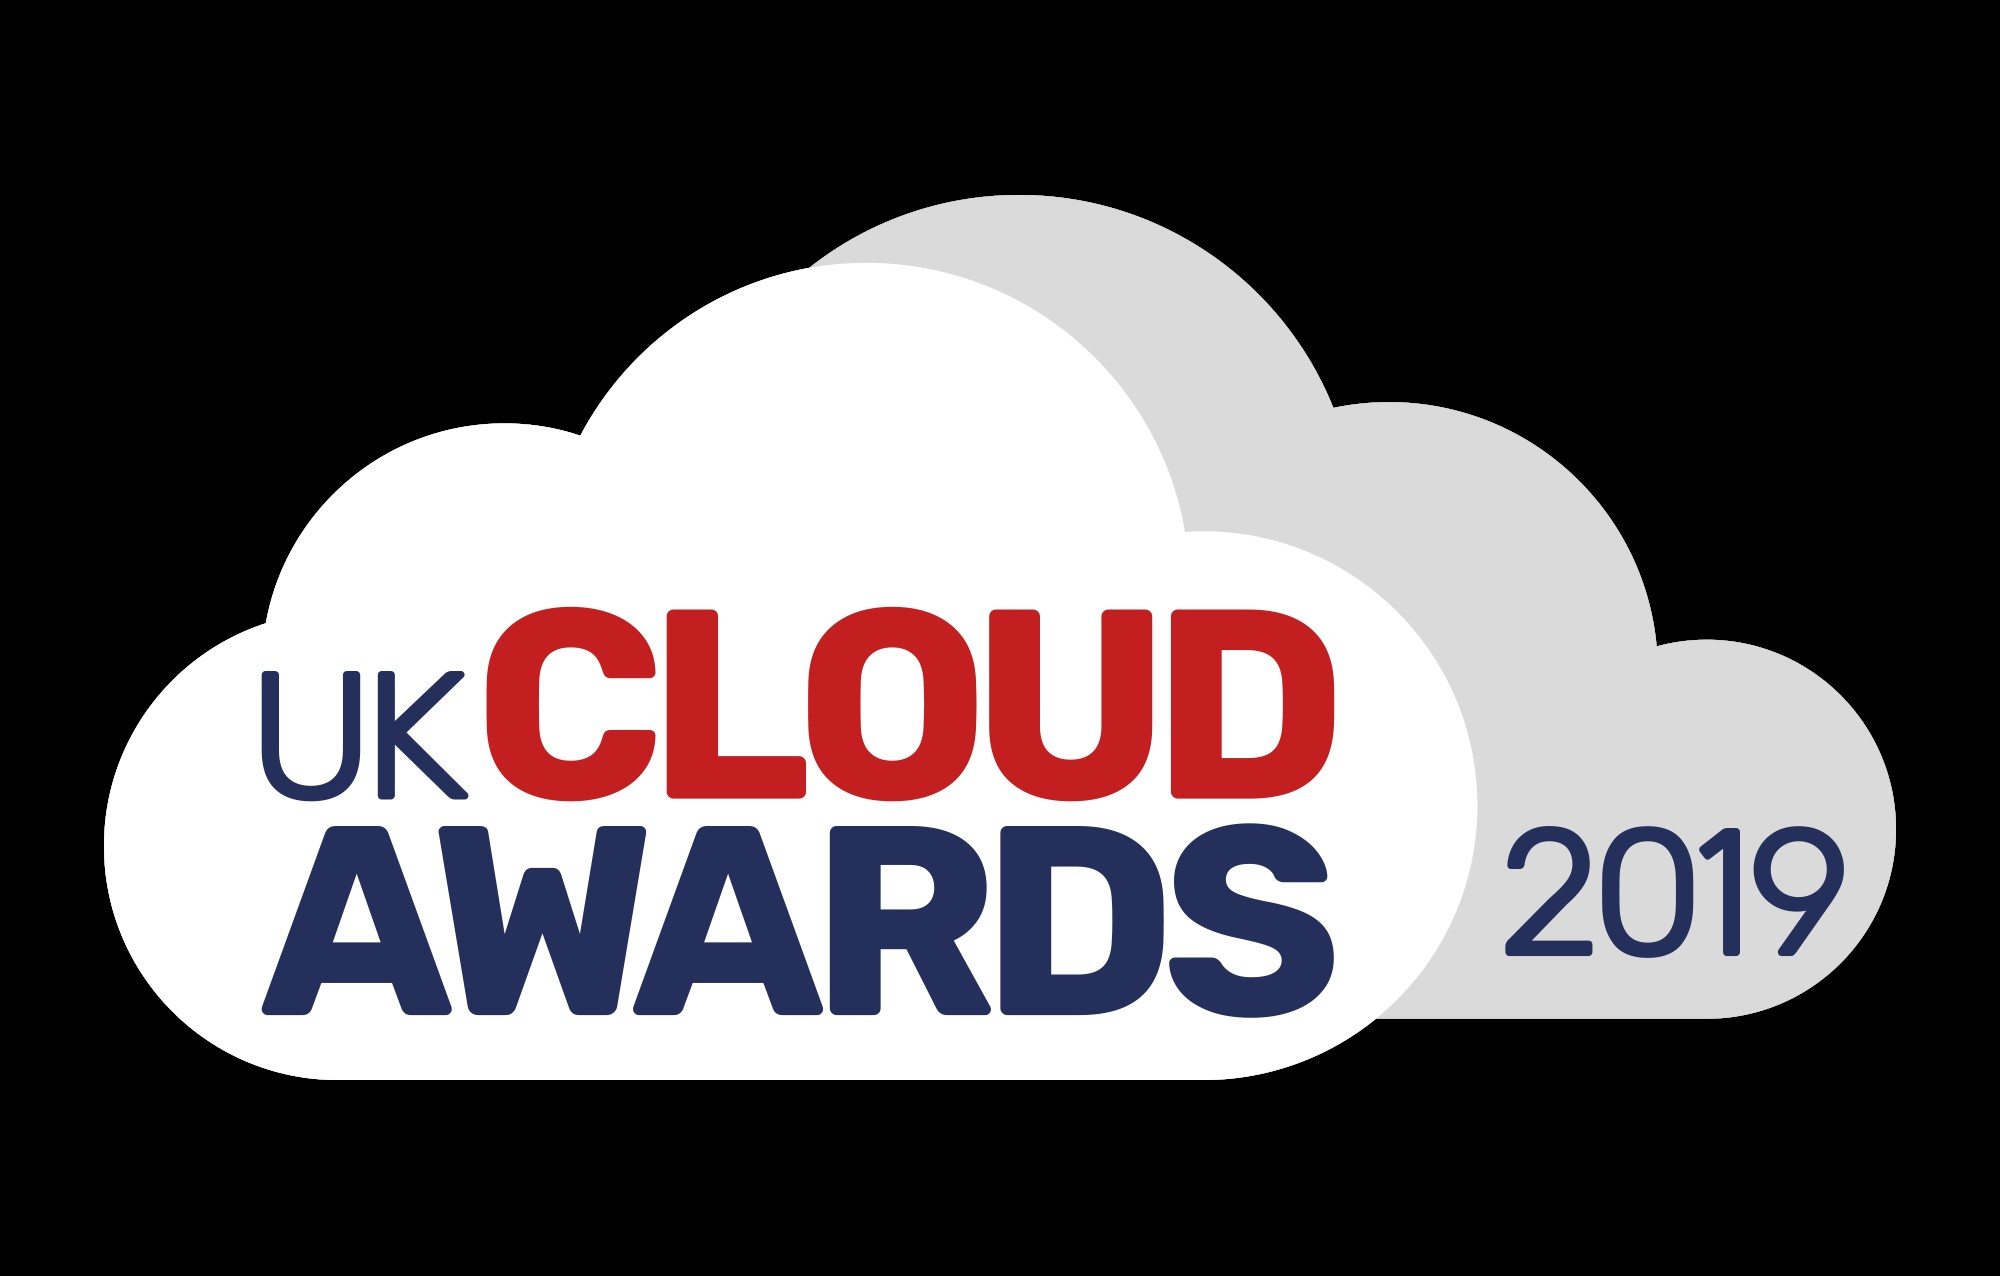 UK Cloud Awards 2019